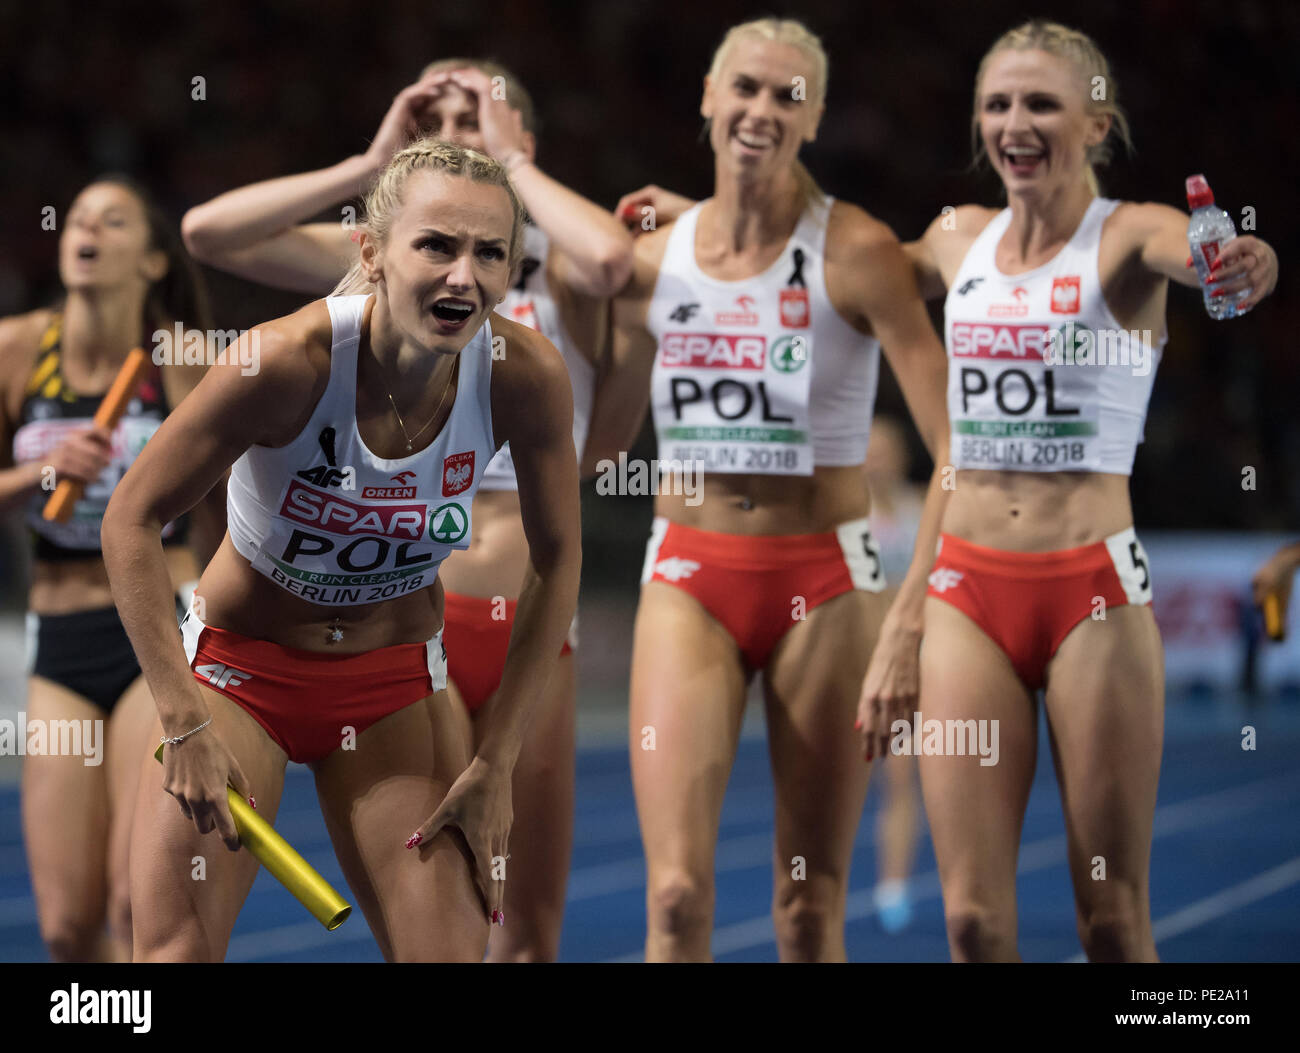 Berlin, Germany. 11th Aug, 2018. Track and Field, European Championship in the Olympic Stadium, 4x400 m Relay Final, Women: Justyna Swiety-Ersetic (l) from Poland cheers at the finish line. Credit: Sven Hoppe/dpa/Alamy Live News - Stock Image